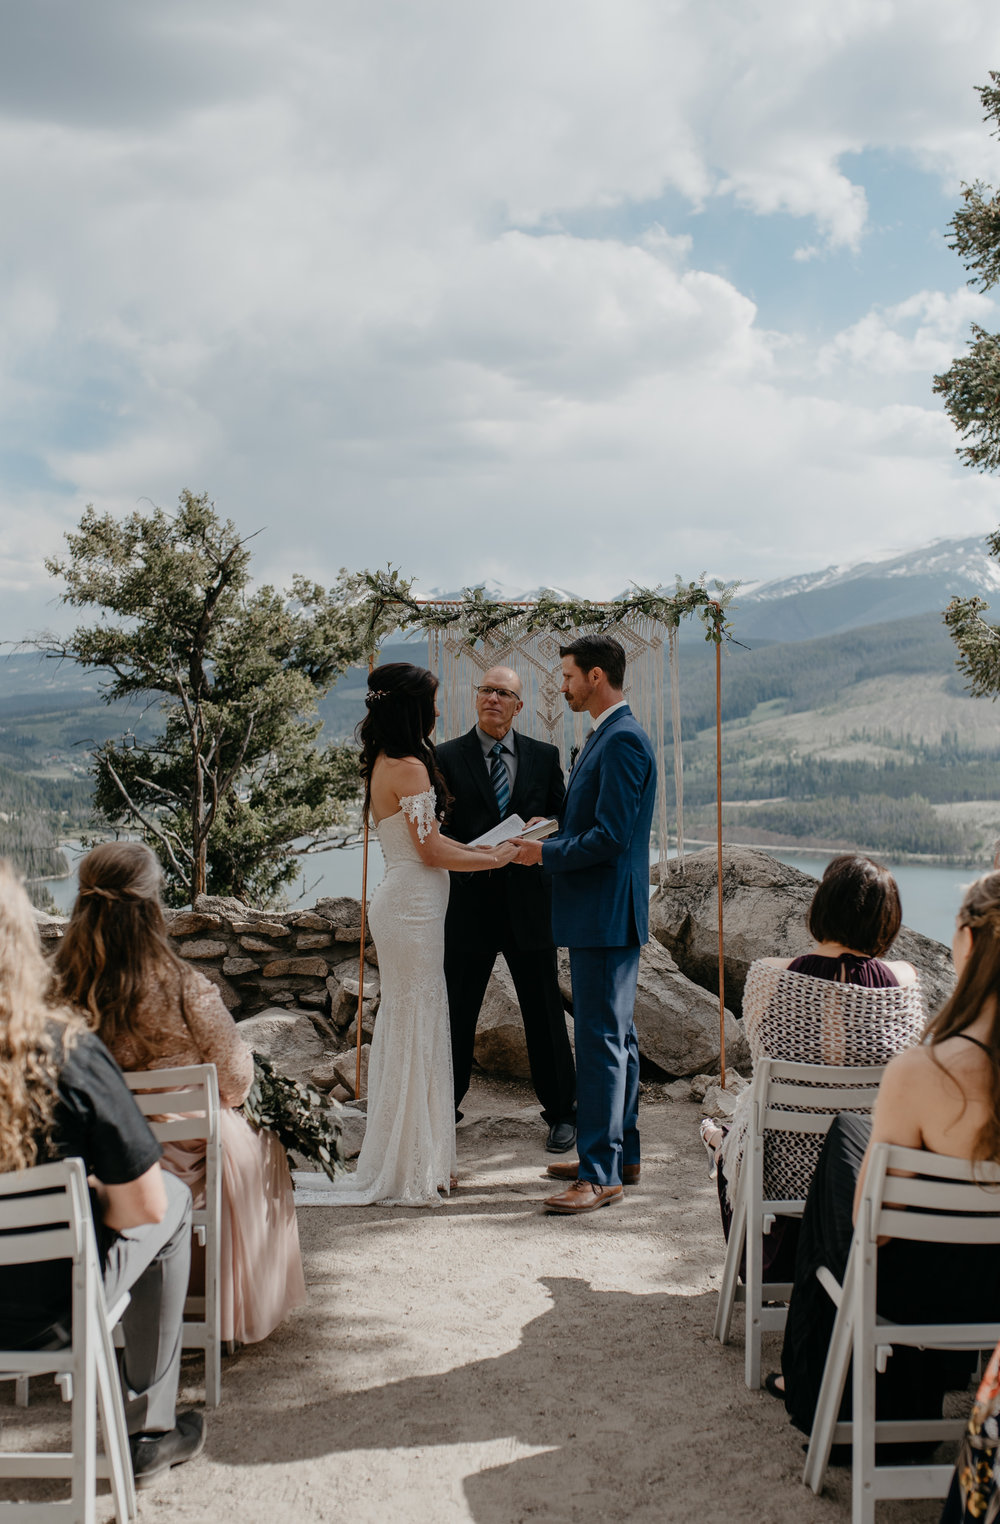 Intimate ceremony at Sapphire Point in Breckenridge, Colorado. Colorado elopement and wedding photographer.